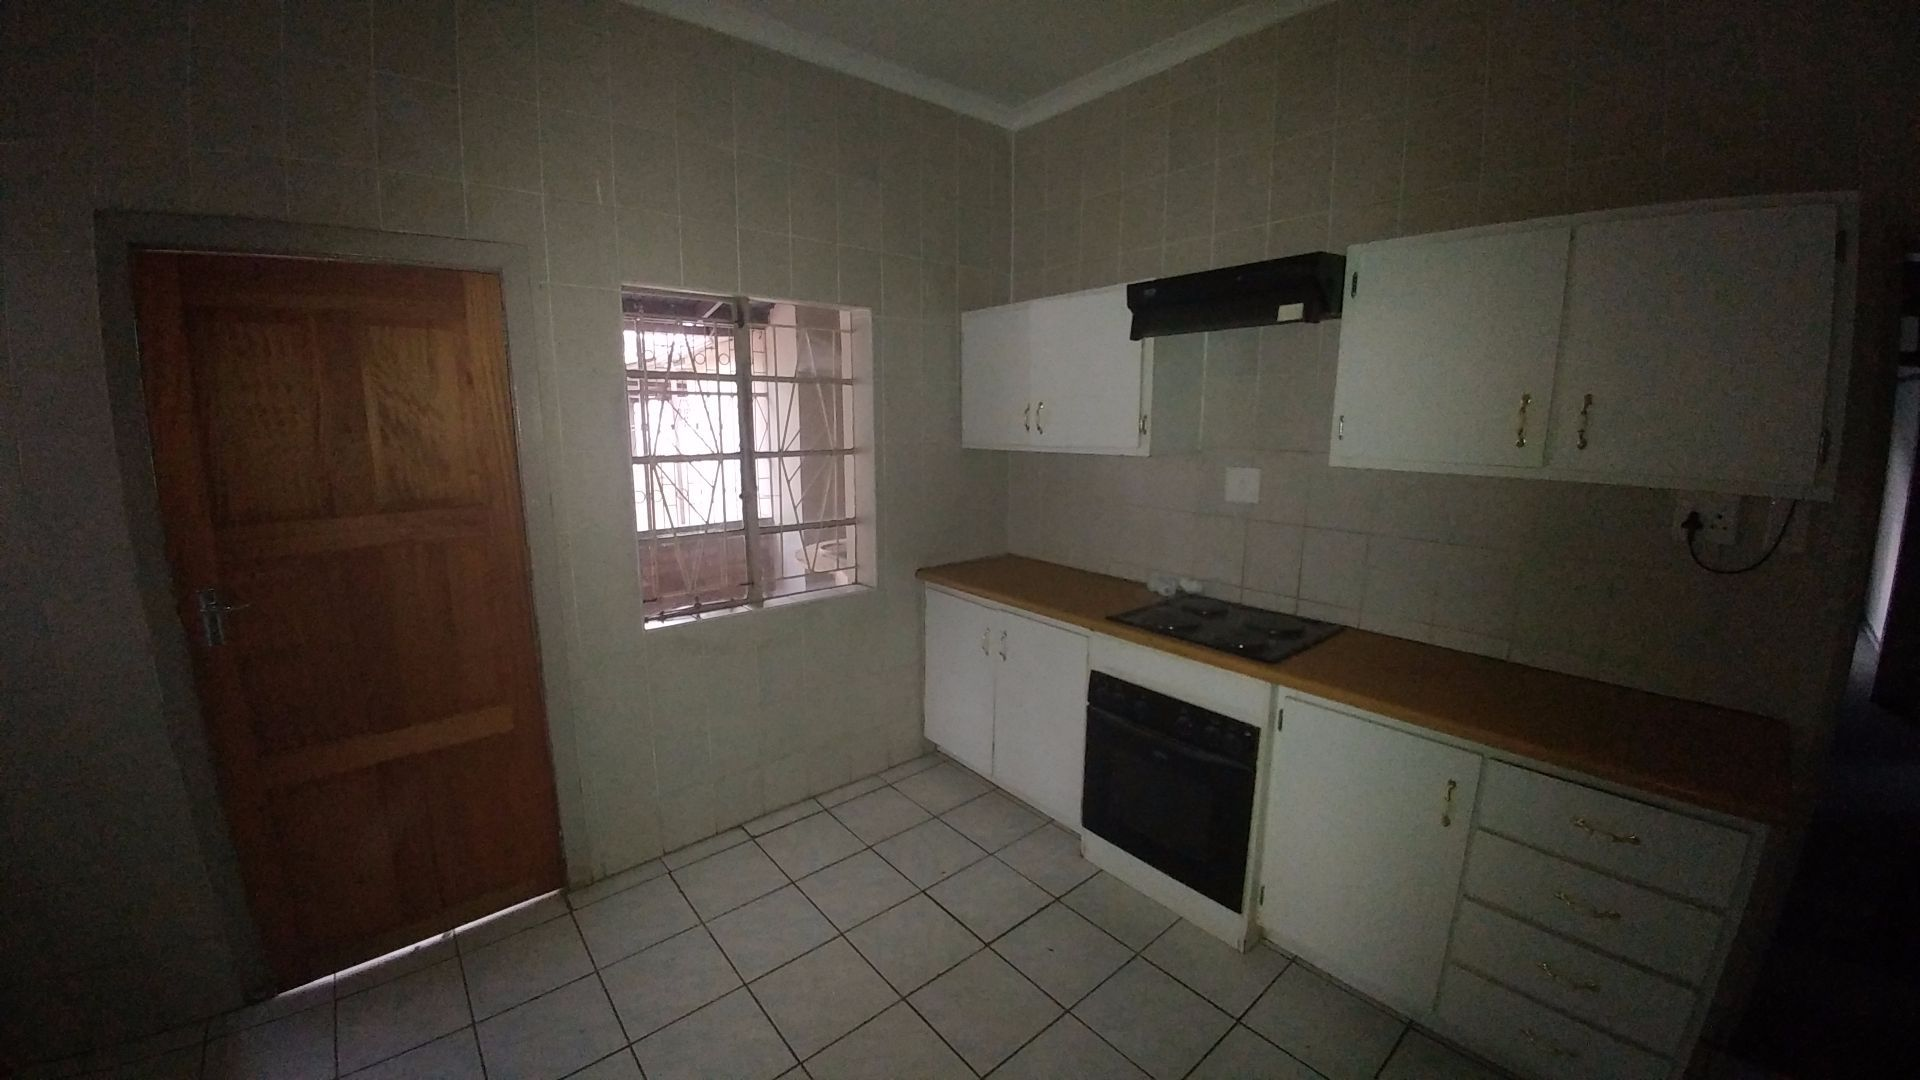 Potchefstroom Central property for sale. Ref No: 13476975. Picture no 4